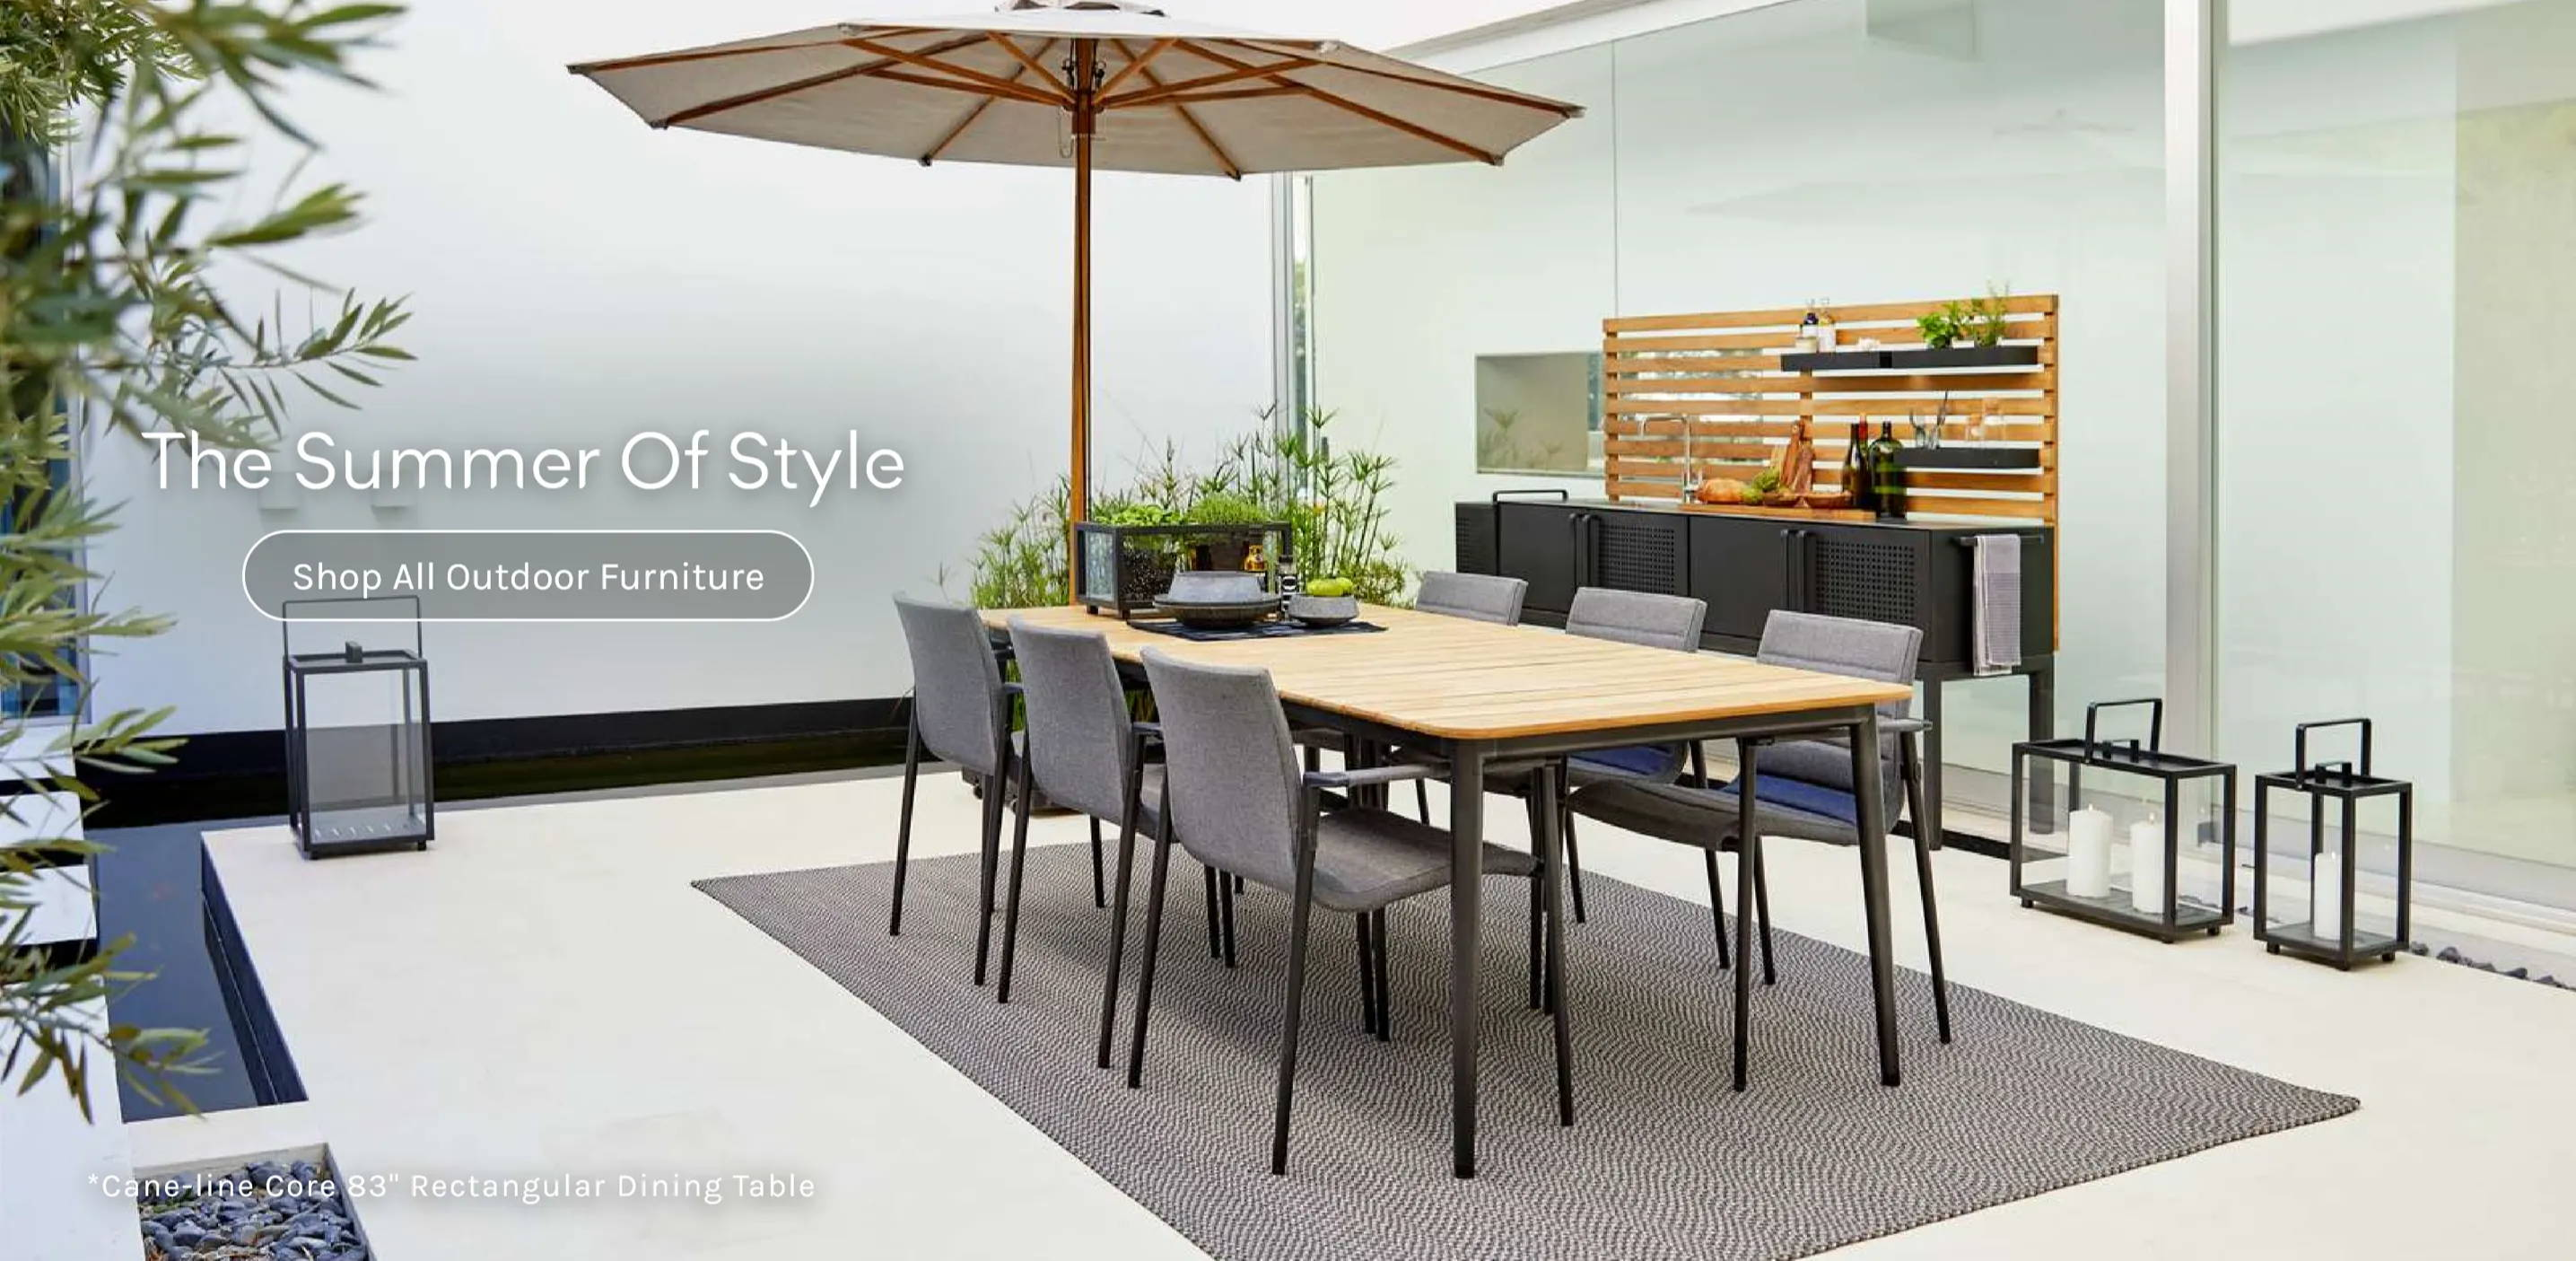 The Summer of Style Shop All Outdoor Furniture